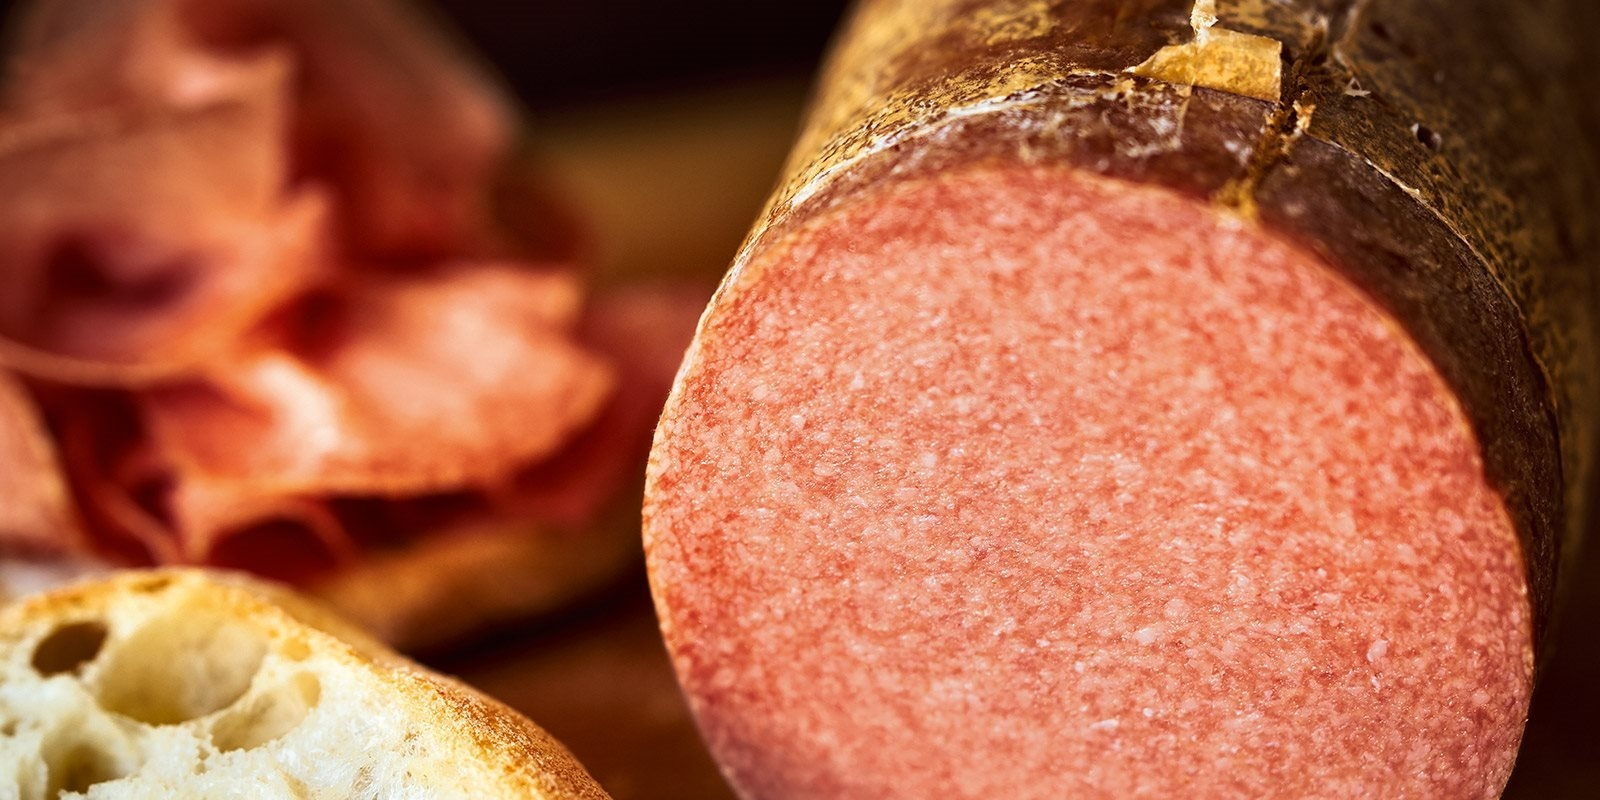 levoni_emozionale_ricette_salame_ungherese